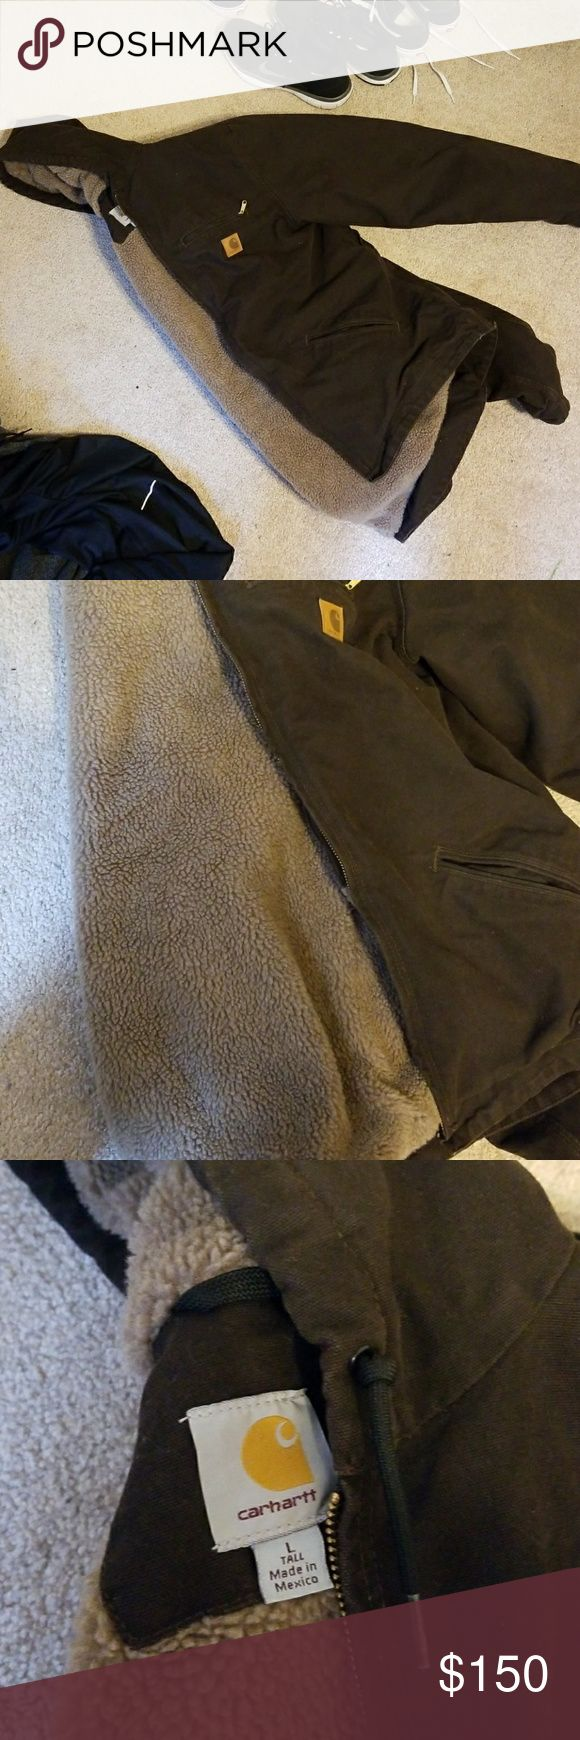 Carhartt winter jacket Great condition, rarely worn.  Has a hood.  Extremely warm fabric on inside of jacket.  Quality can be felt. Carhartt Jackets & Coats